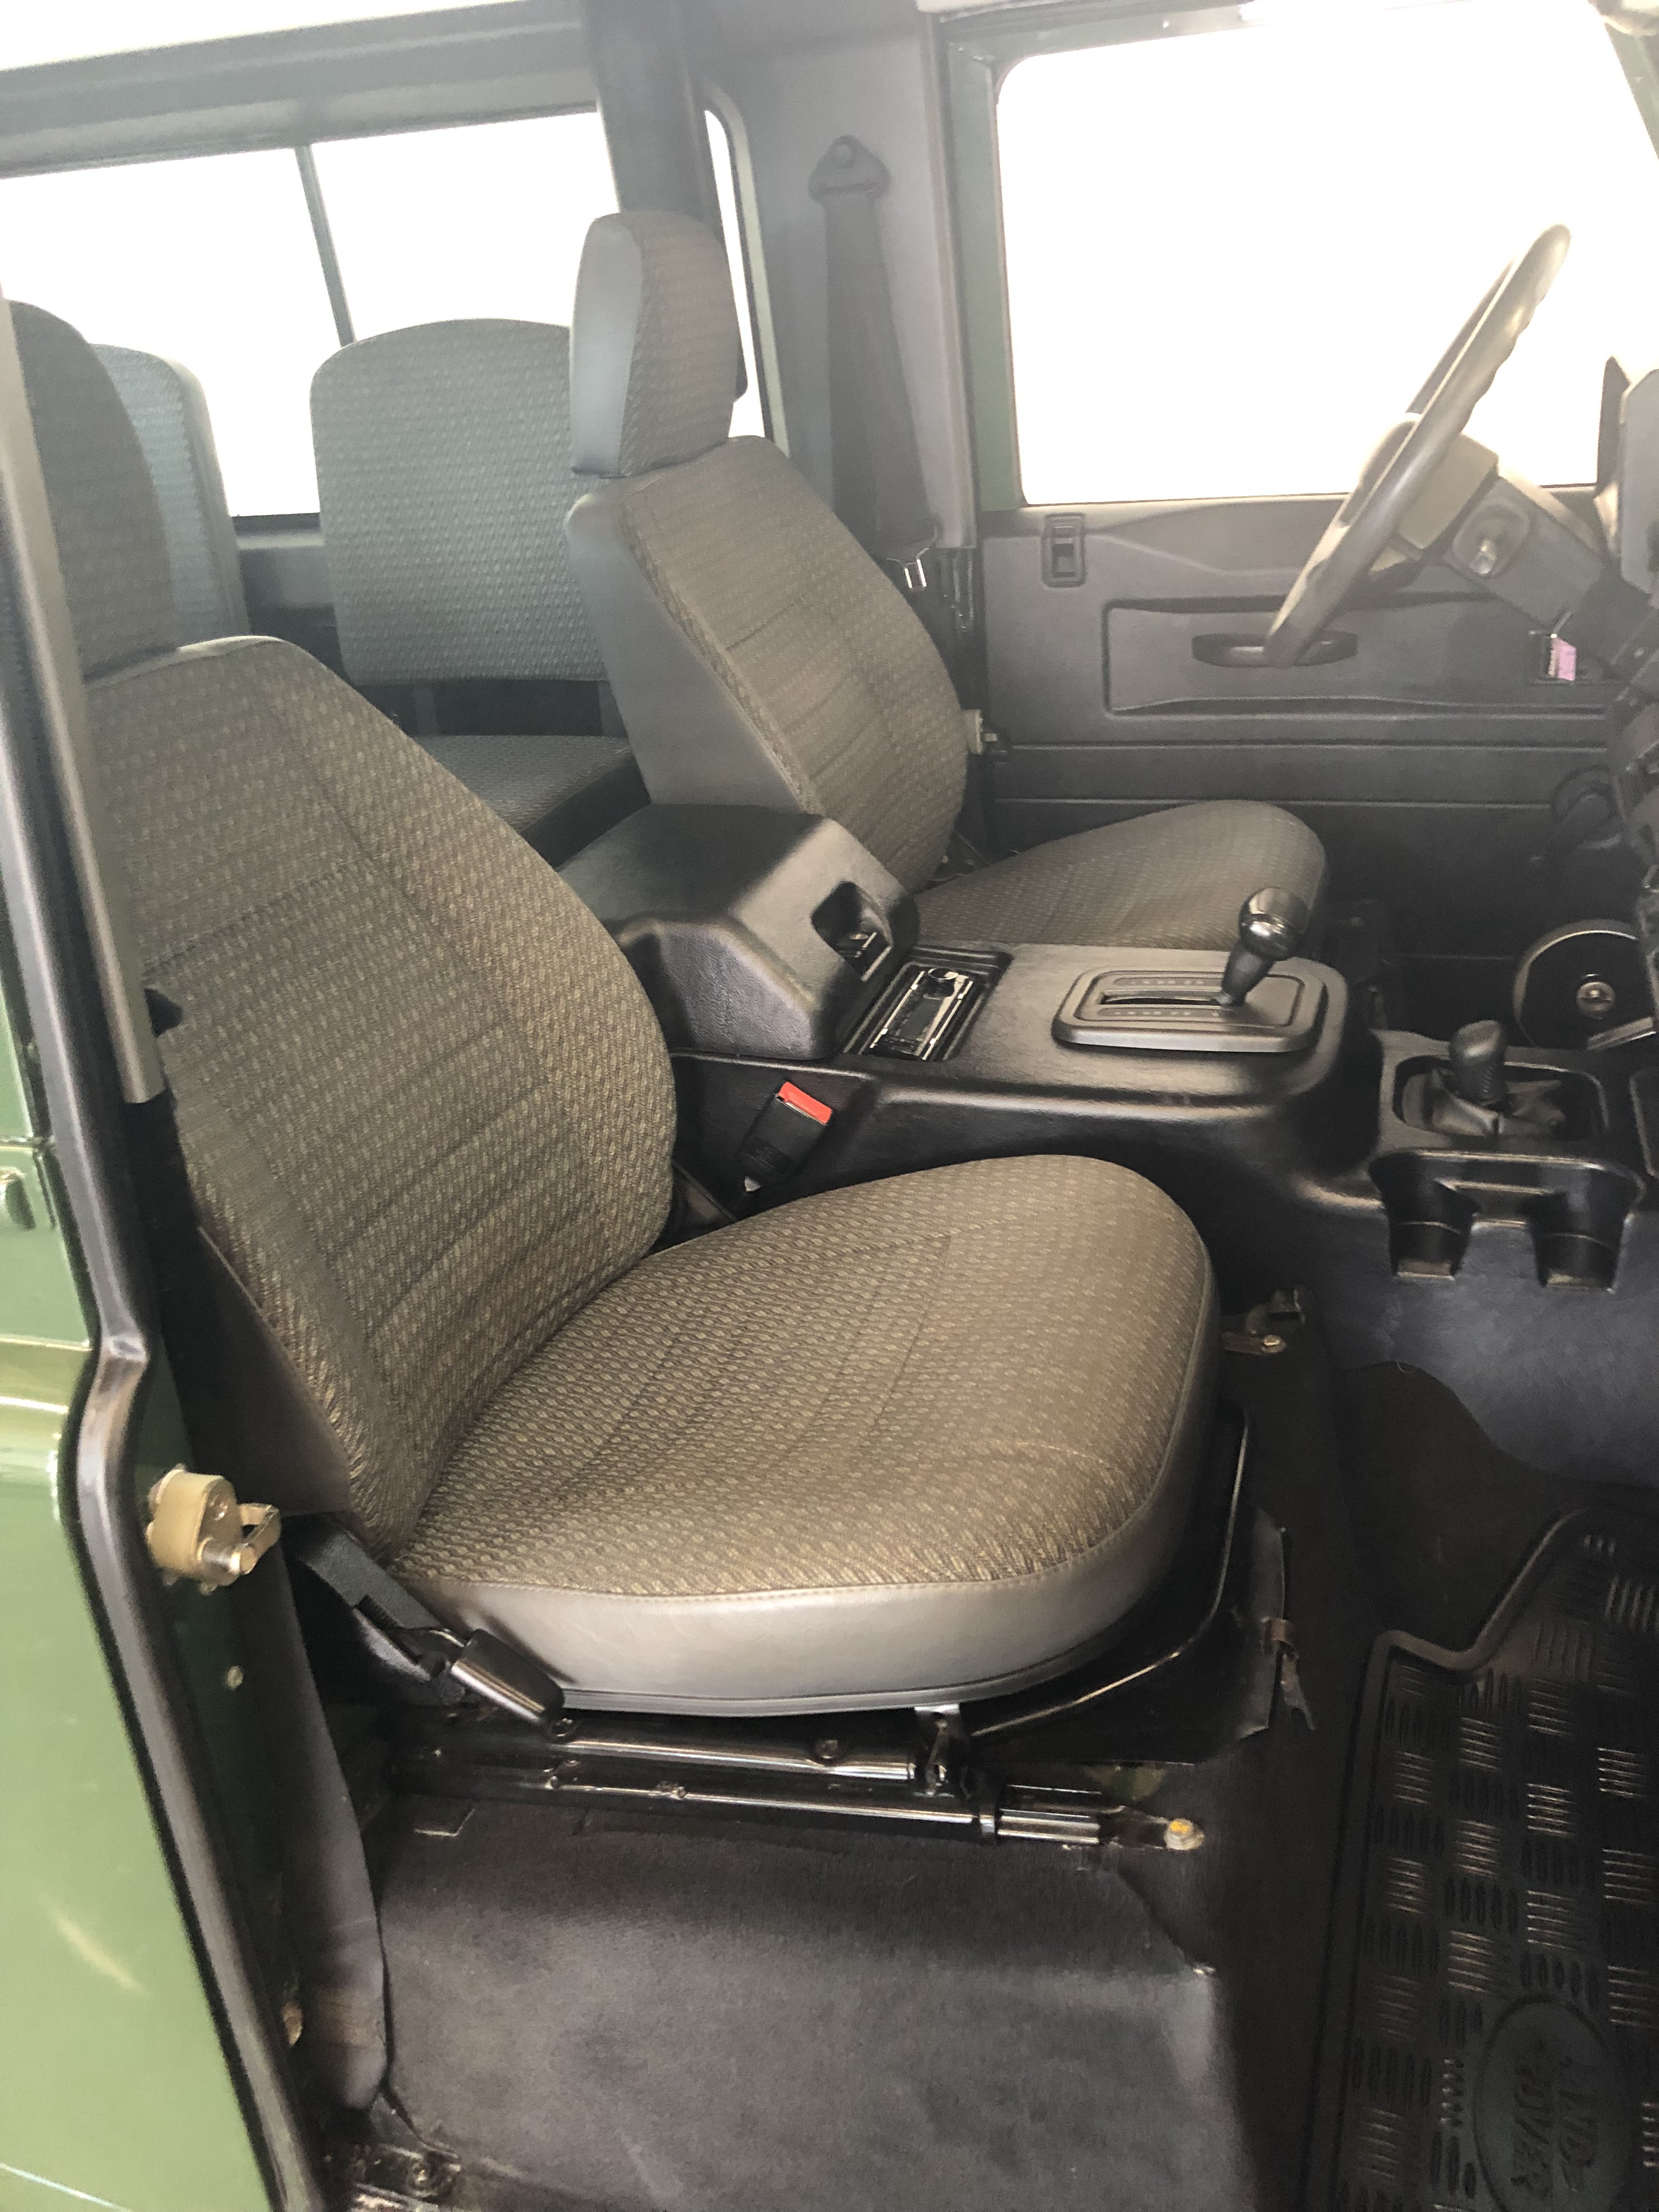 Tremendous Pre Owned 1997 Land Rover Defender 90 4Wd Special Purpose Vehicles Short Links Chair Design For Home Short Linksinfo